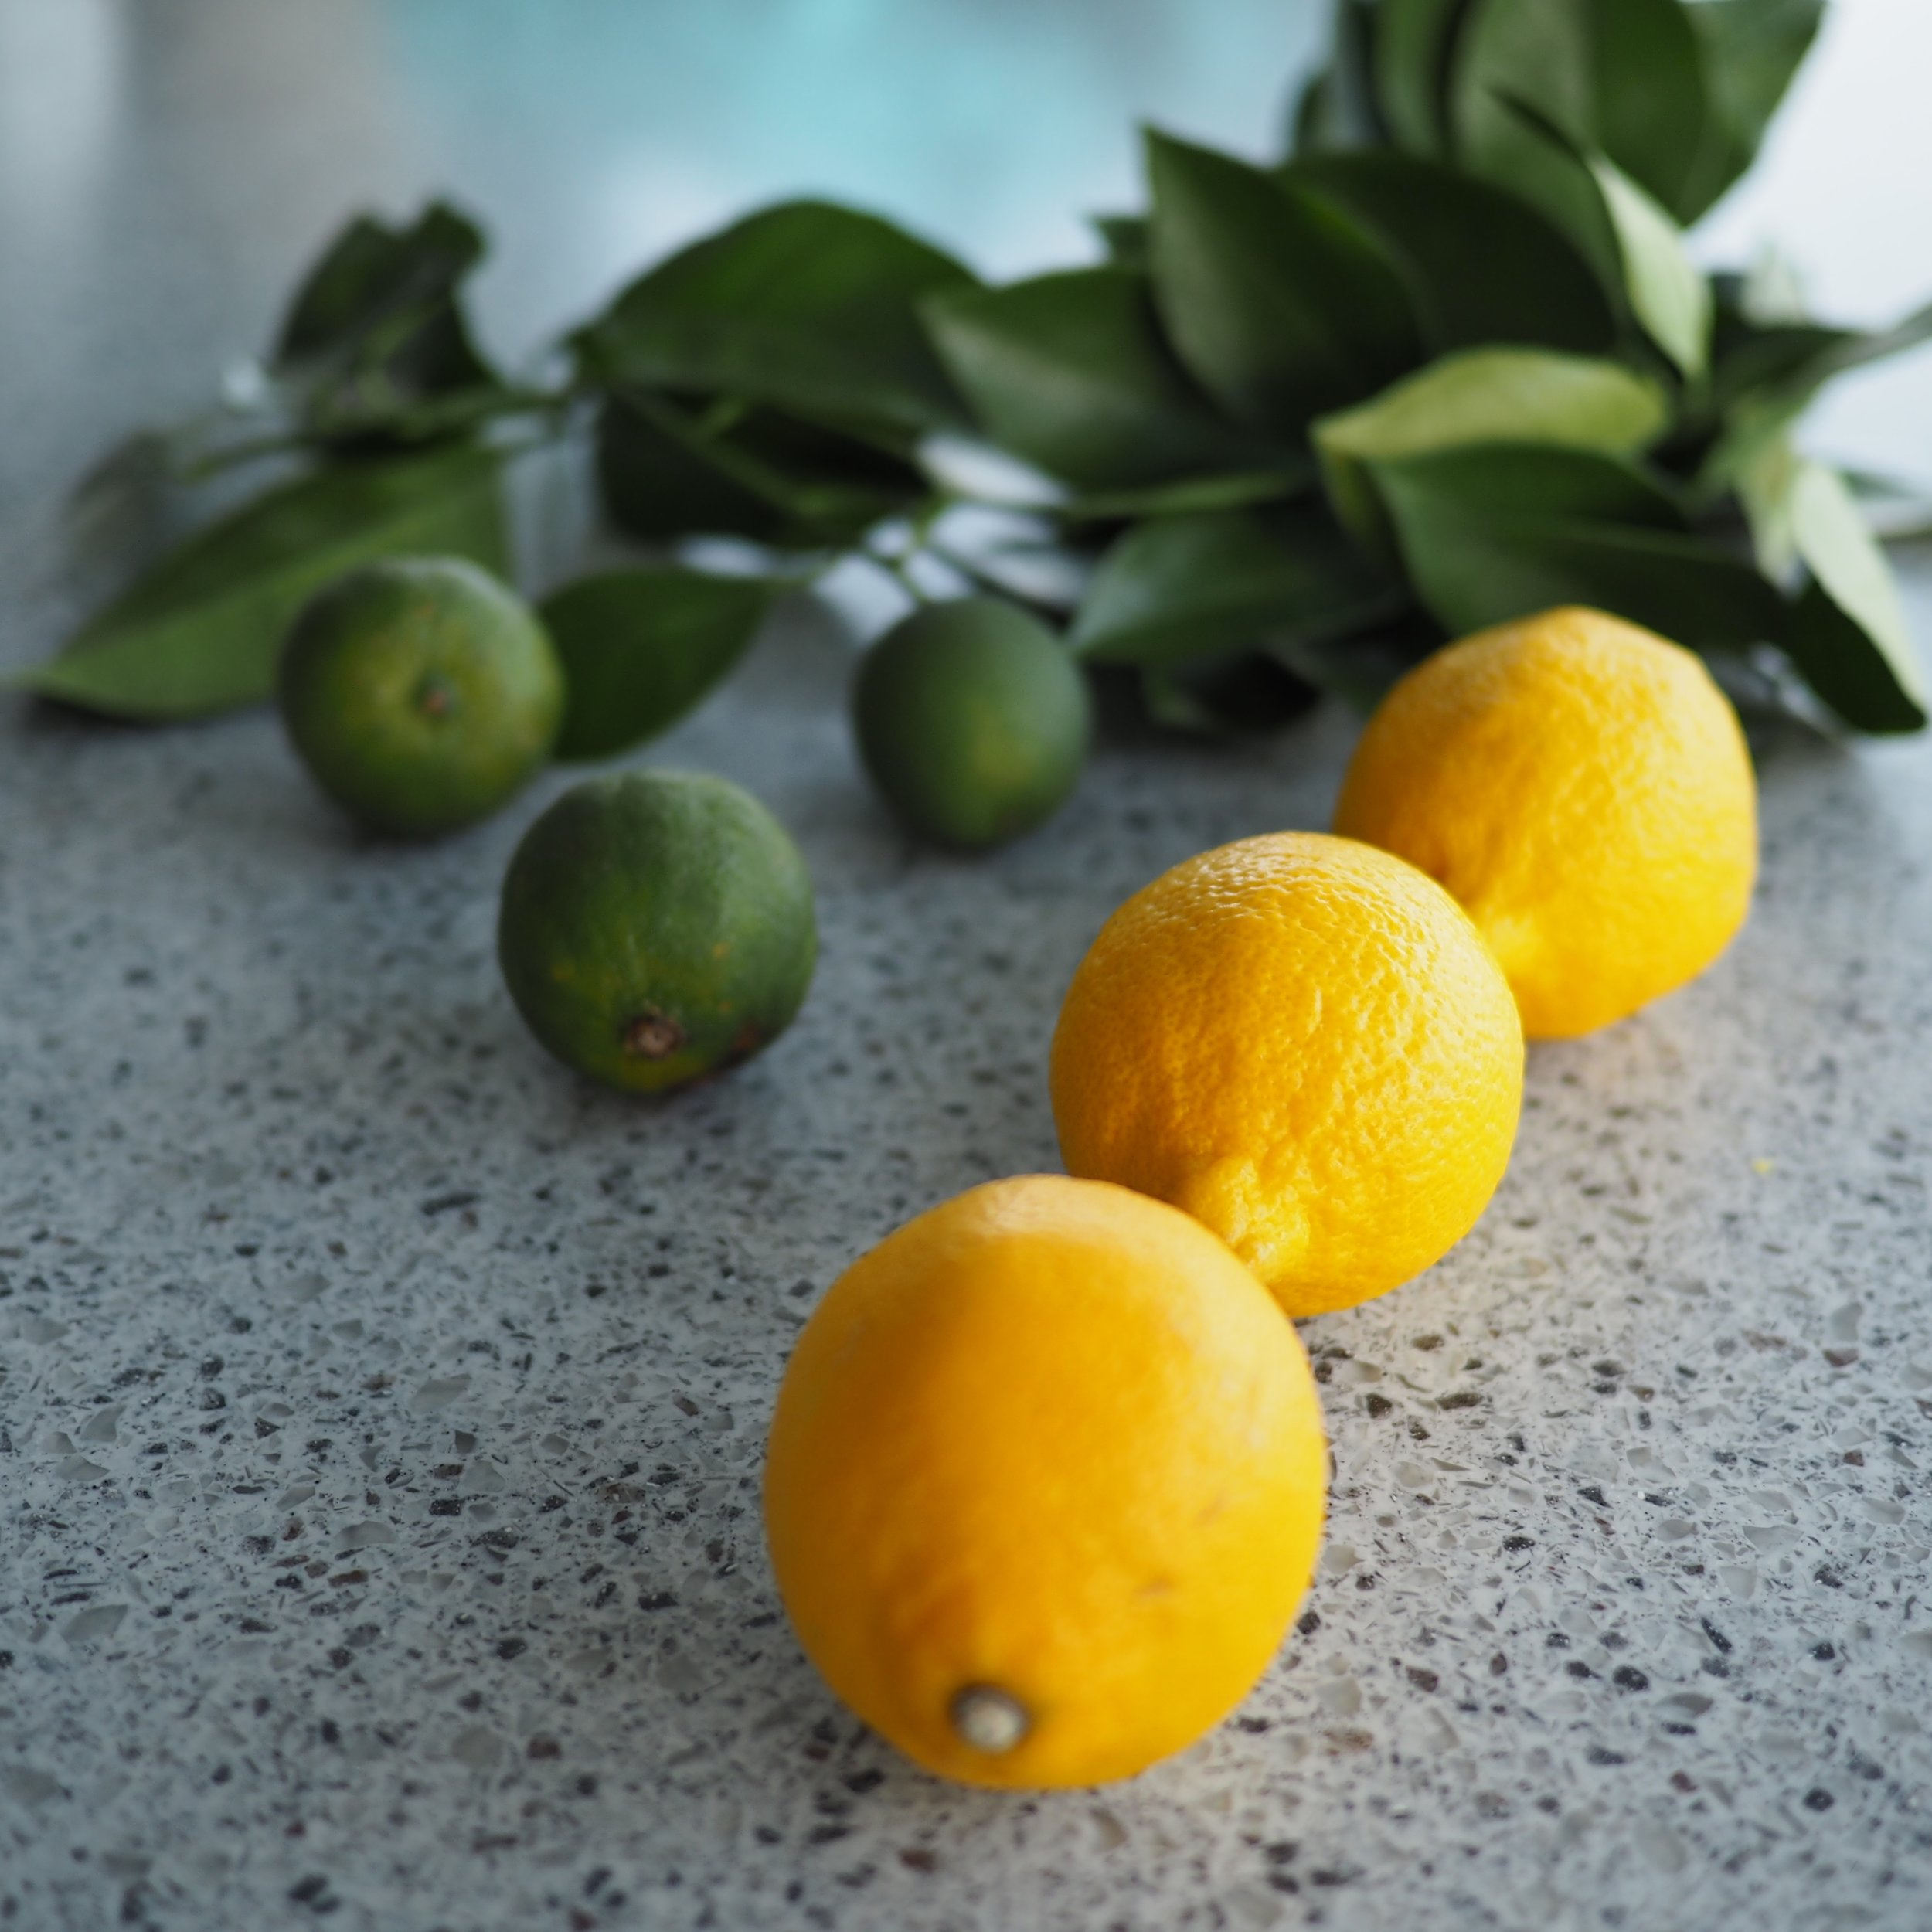 For clear skin, bright eyes & a bushy tail, drink hot water & lemon when you first wake up.